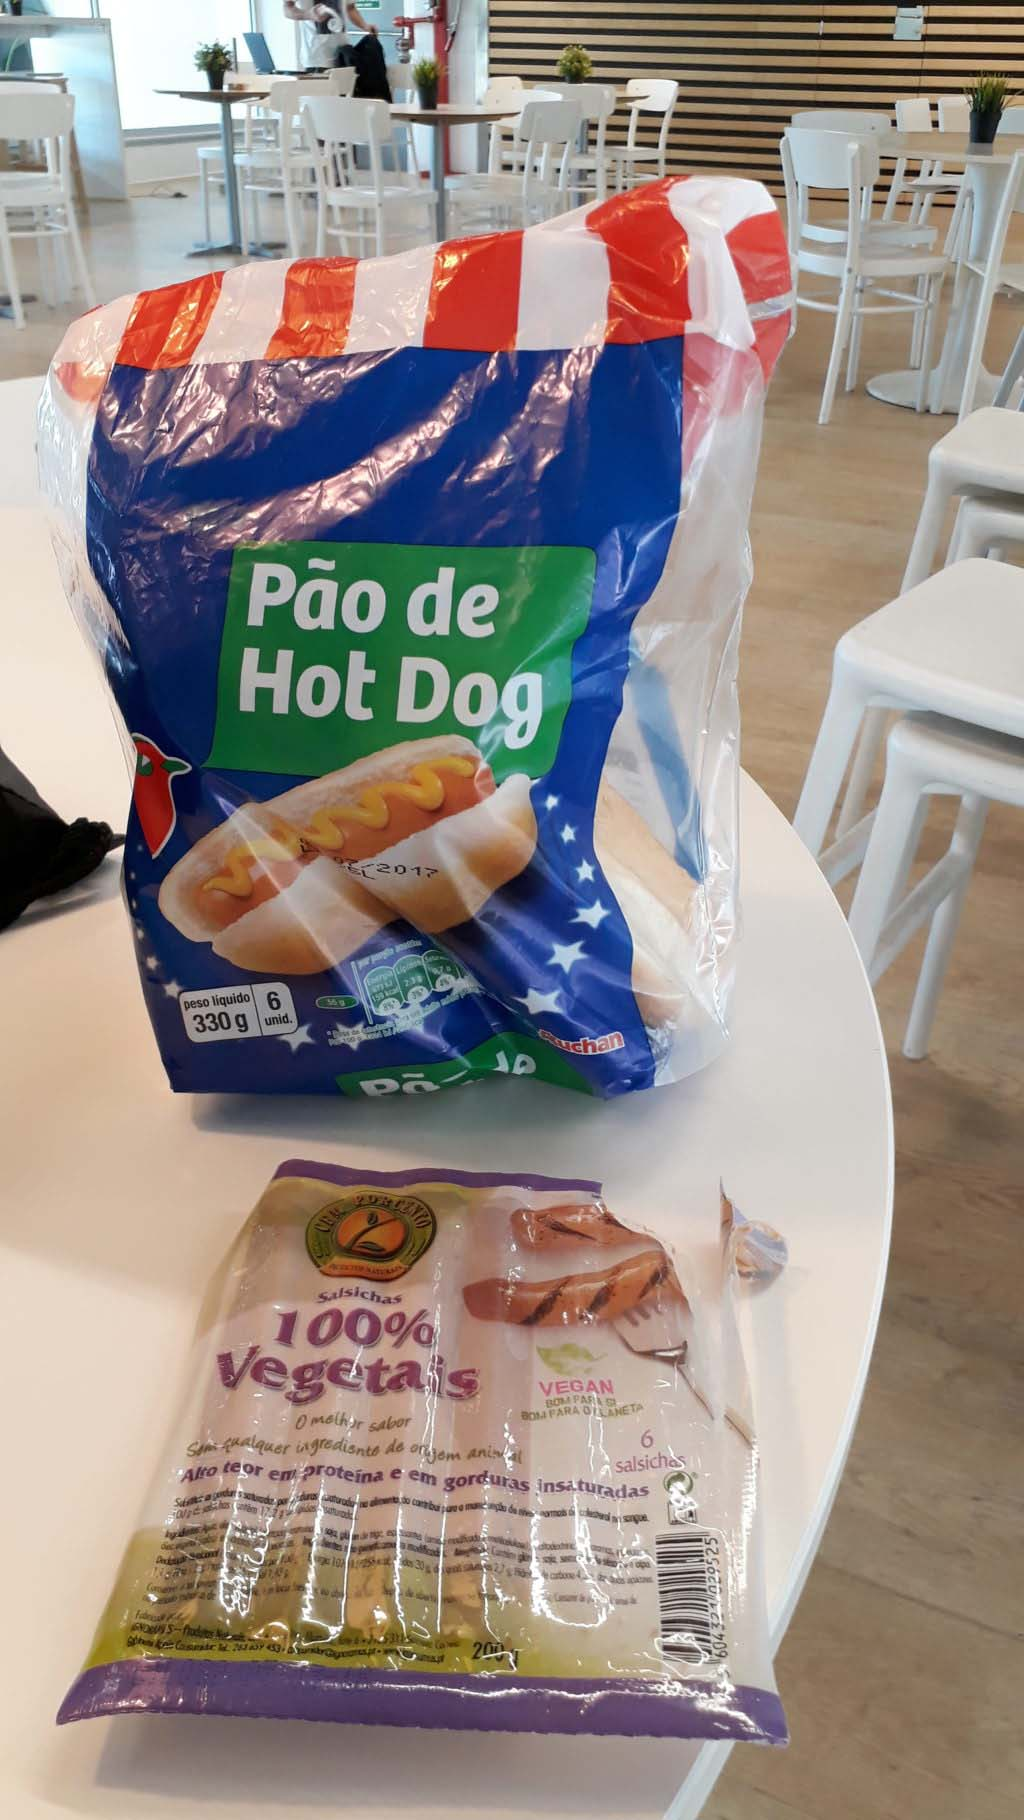 Hot dog buns & vegan sausages from Jumbo. And no, that's not Ikea in the background and we would never assemble our own vegan hotdogs there and make them warm in the microwave...who does such a thing?! ;)